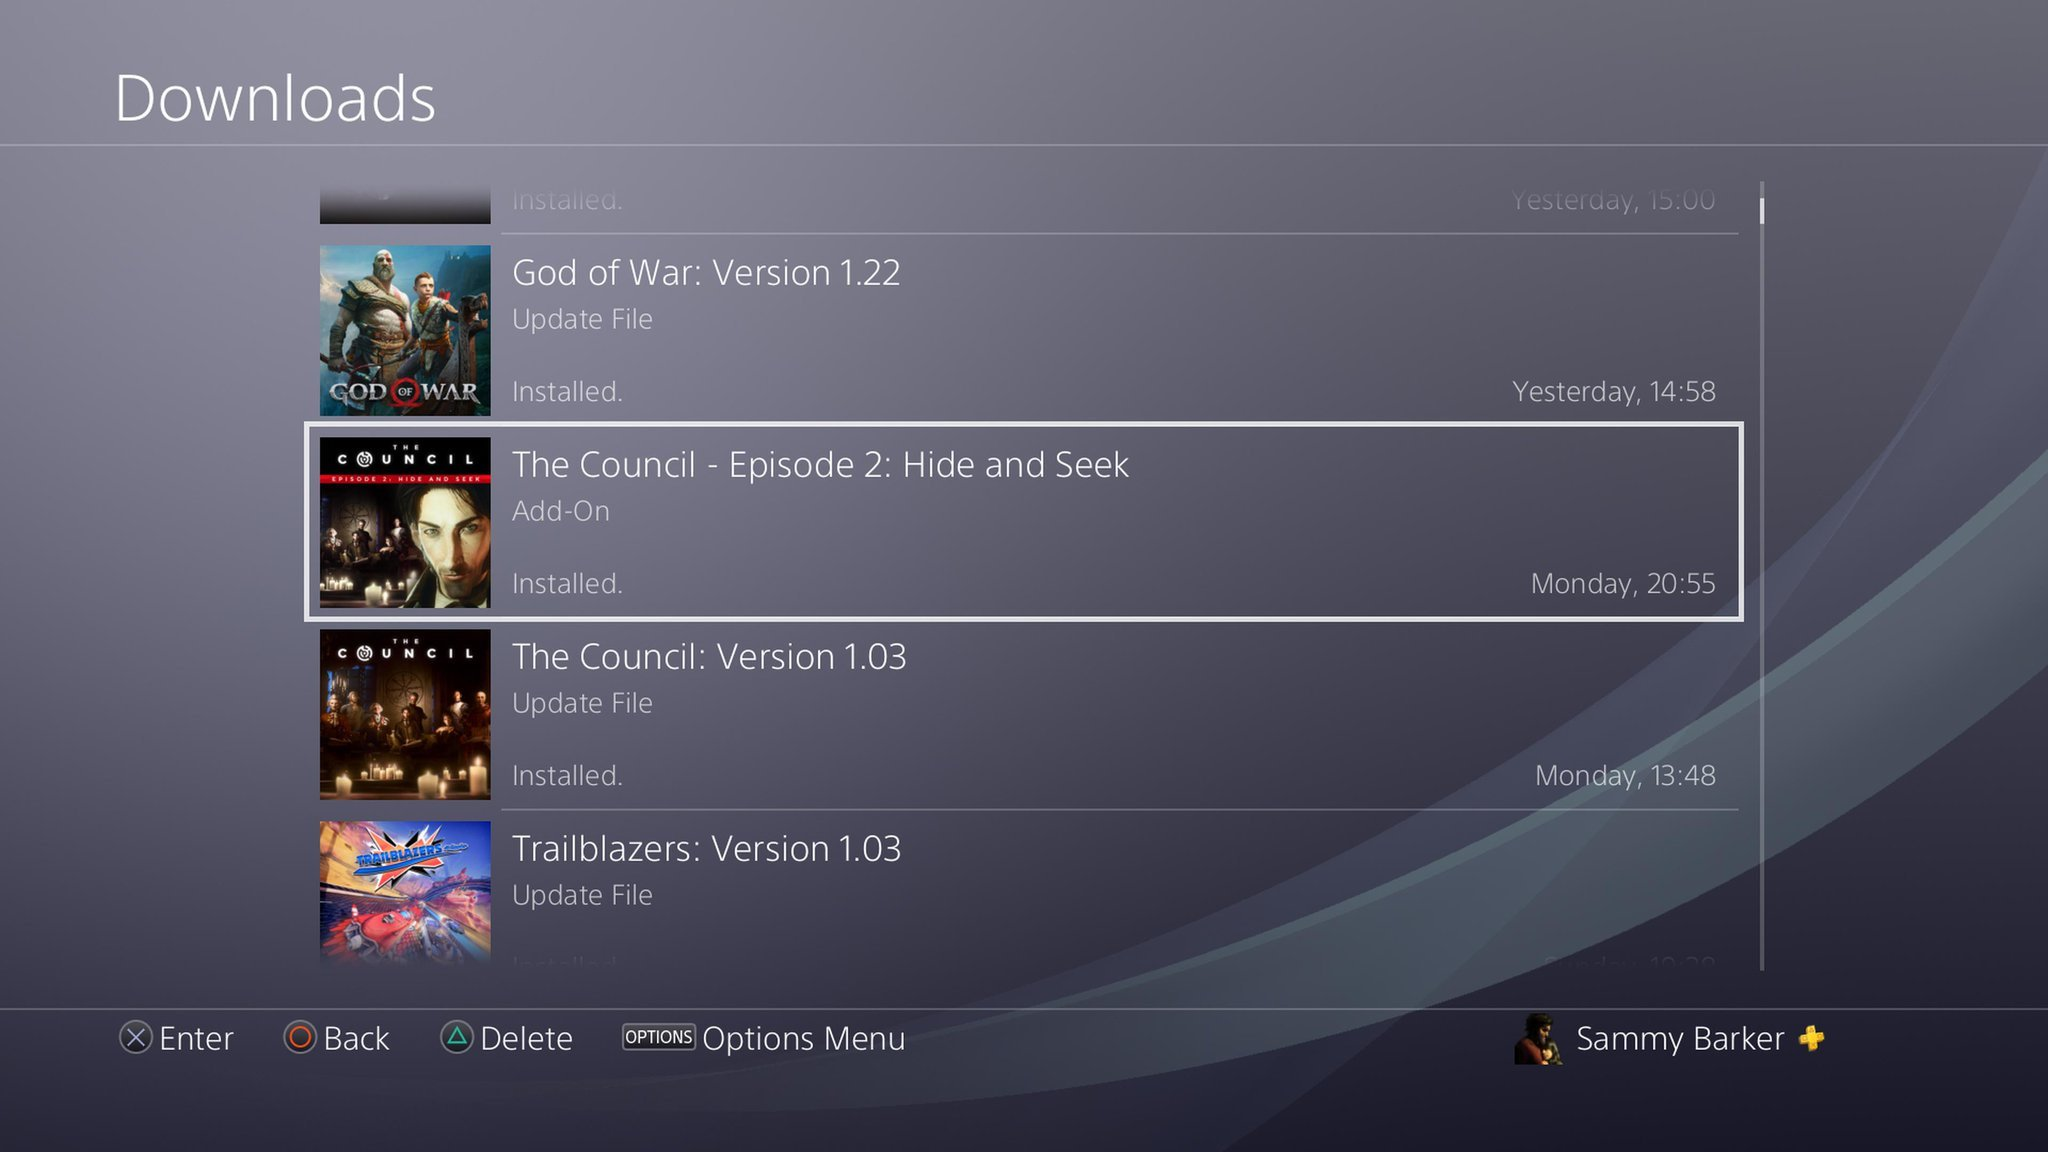 How to Improve Slow PS4 Download Speeds - Guide - Push Square